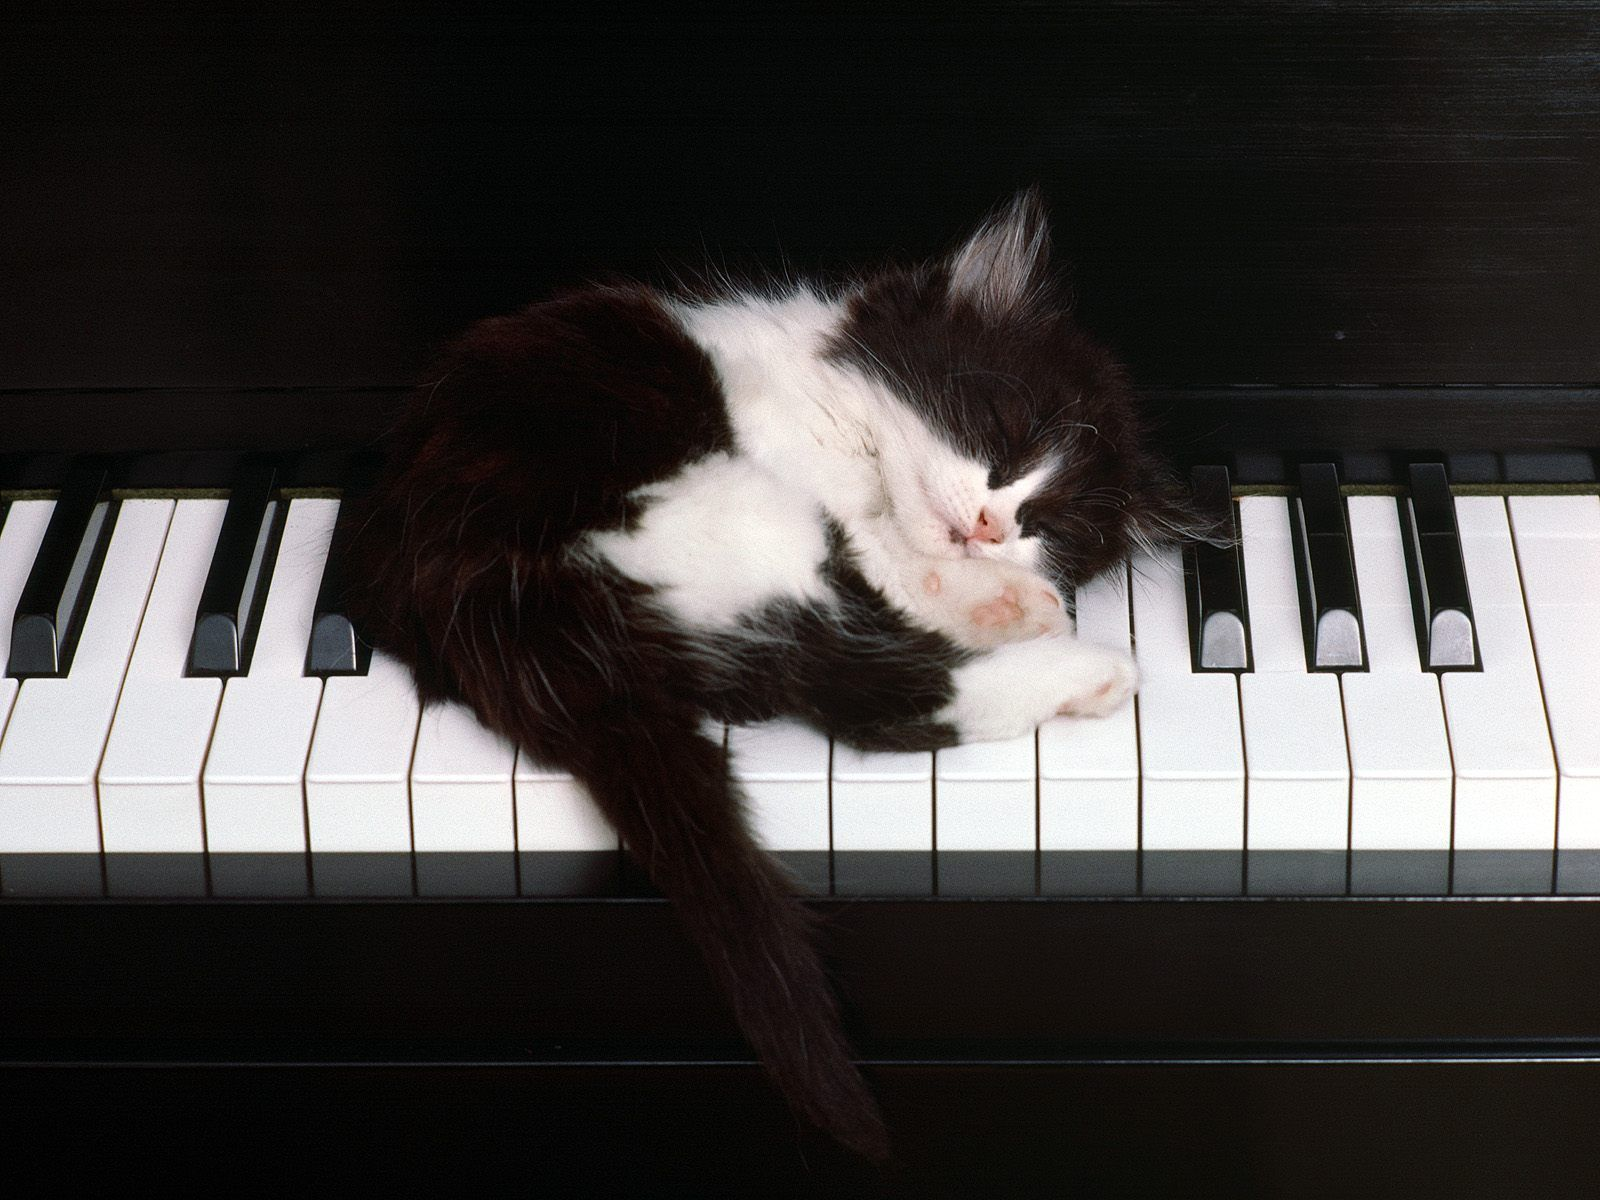 a purrrrrfect piano